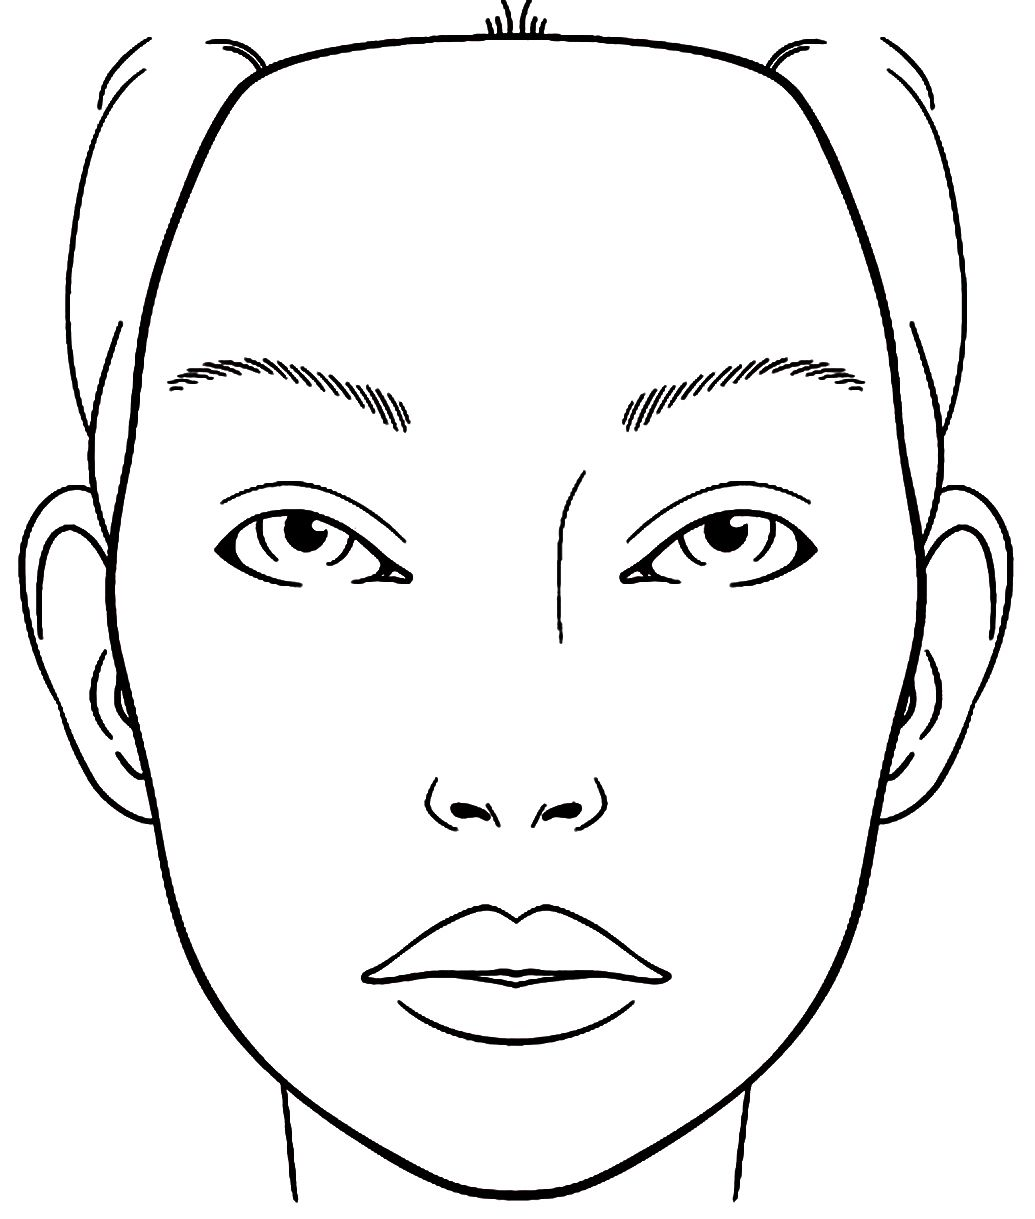 1035x1219 Blank Face Chart Sketch Coloring Page Teagan